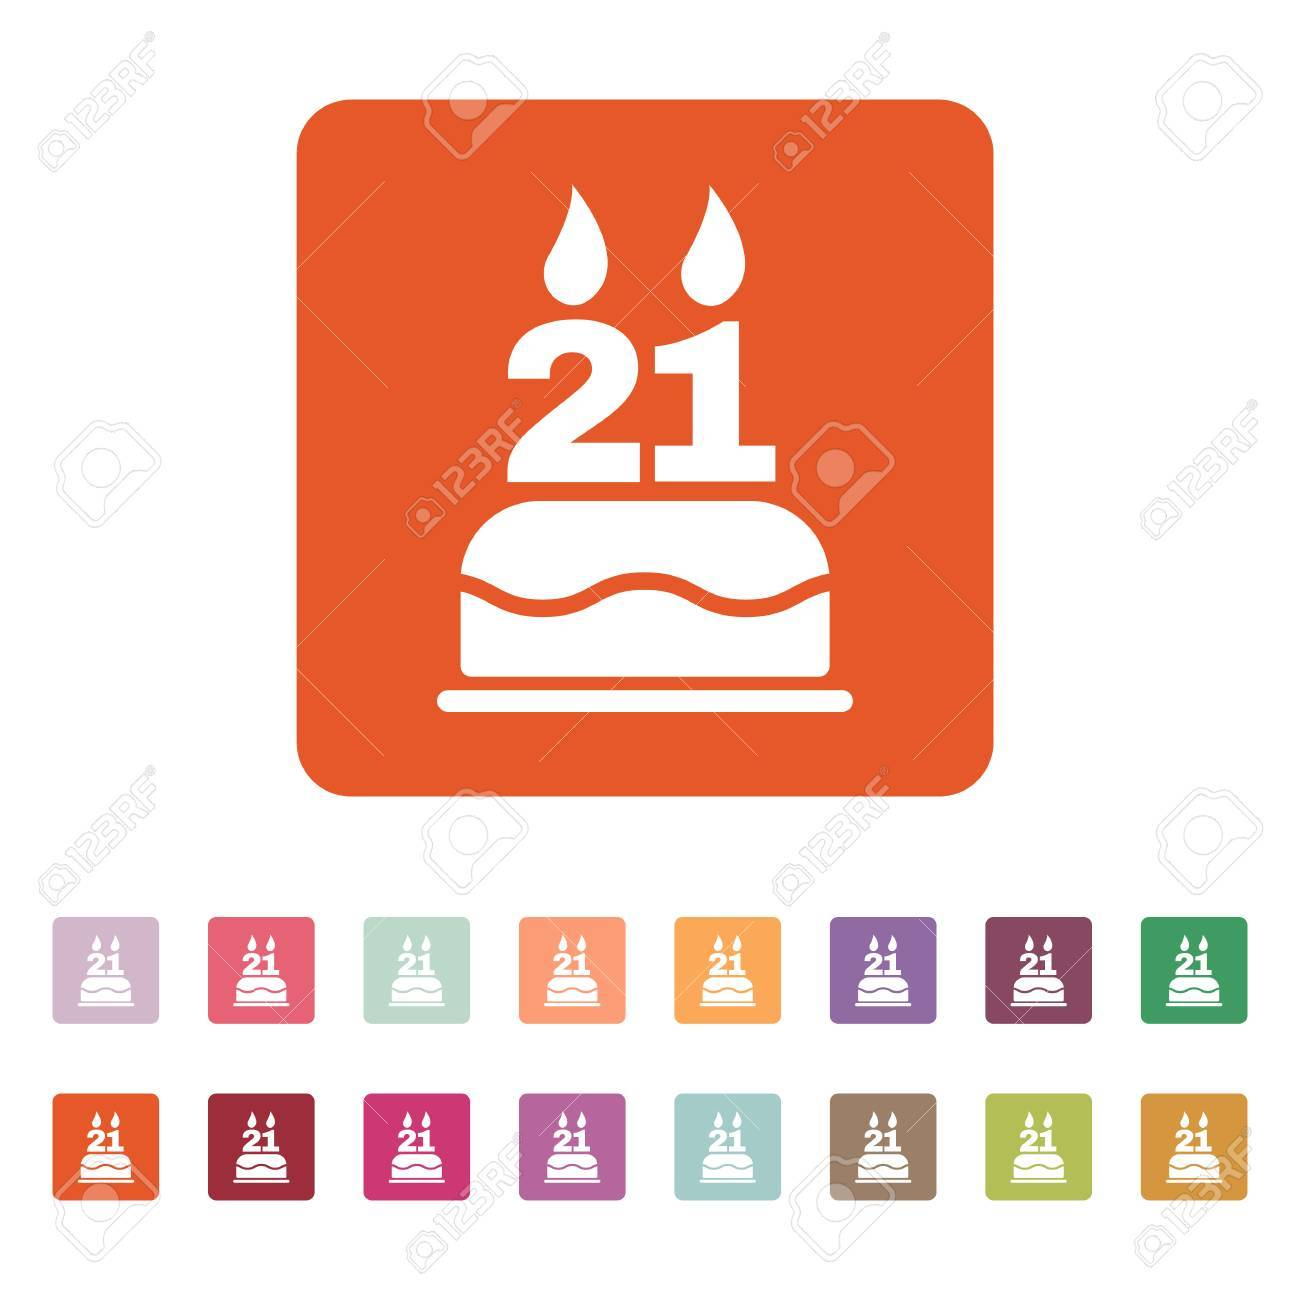 The Birthday Cake With Candles In Form Of Number 21 Icon Symbol